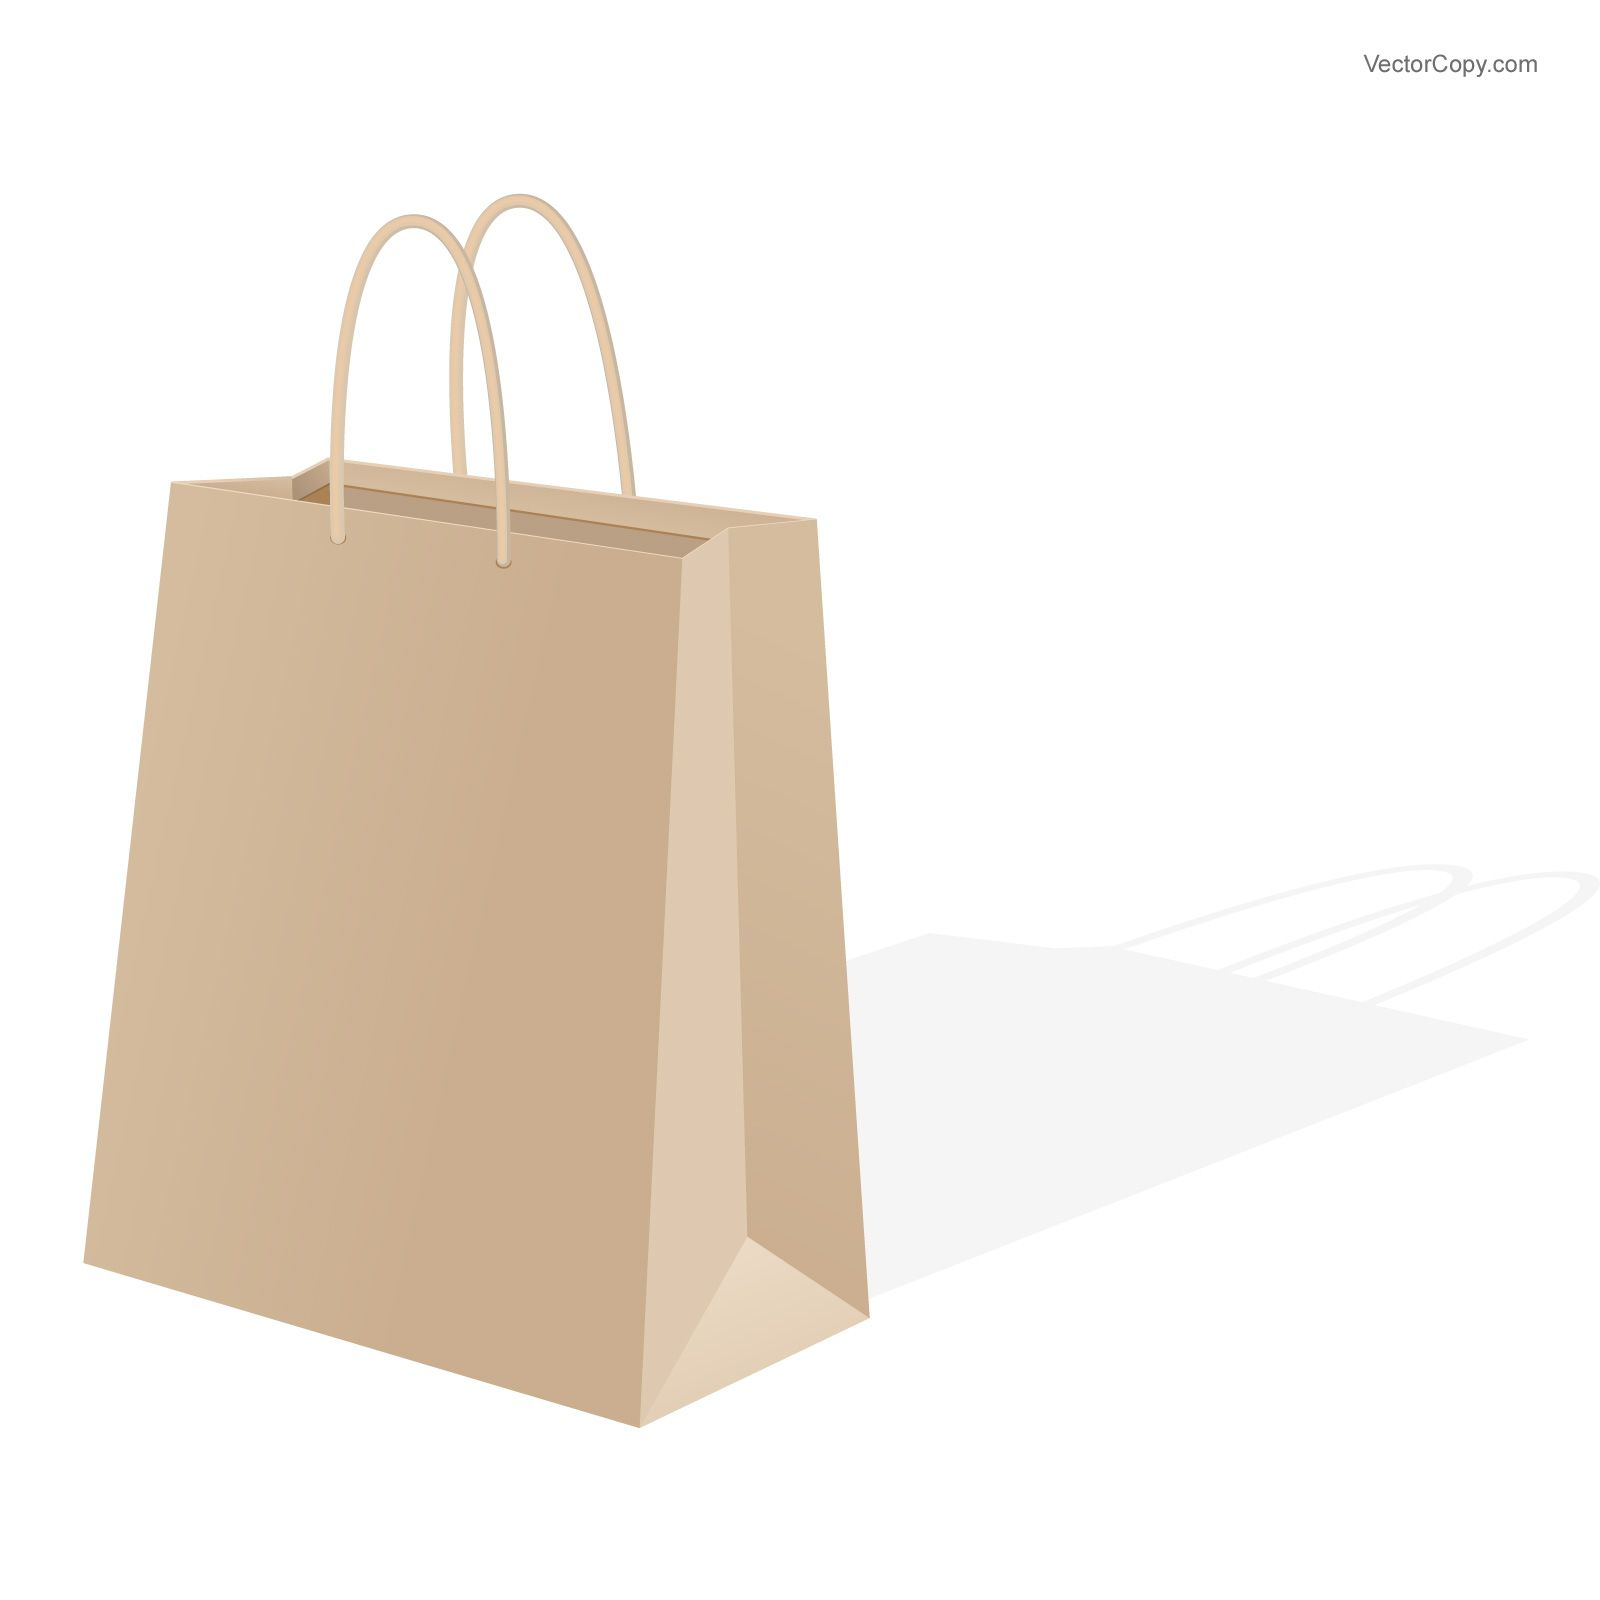 Paper shopping bag, download free vector images | Free vector ...